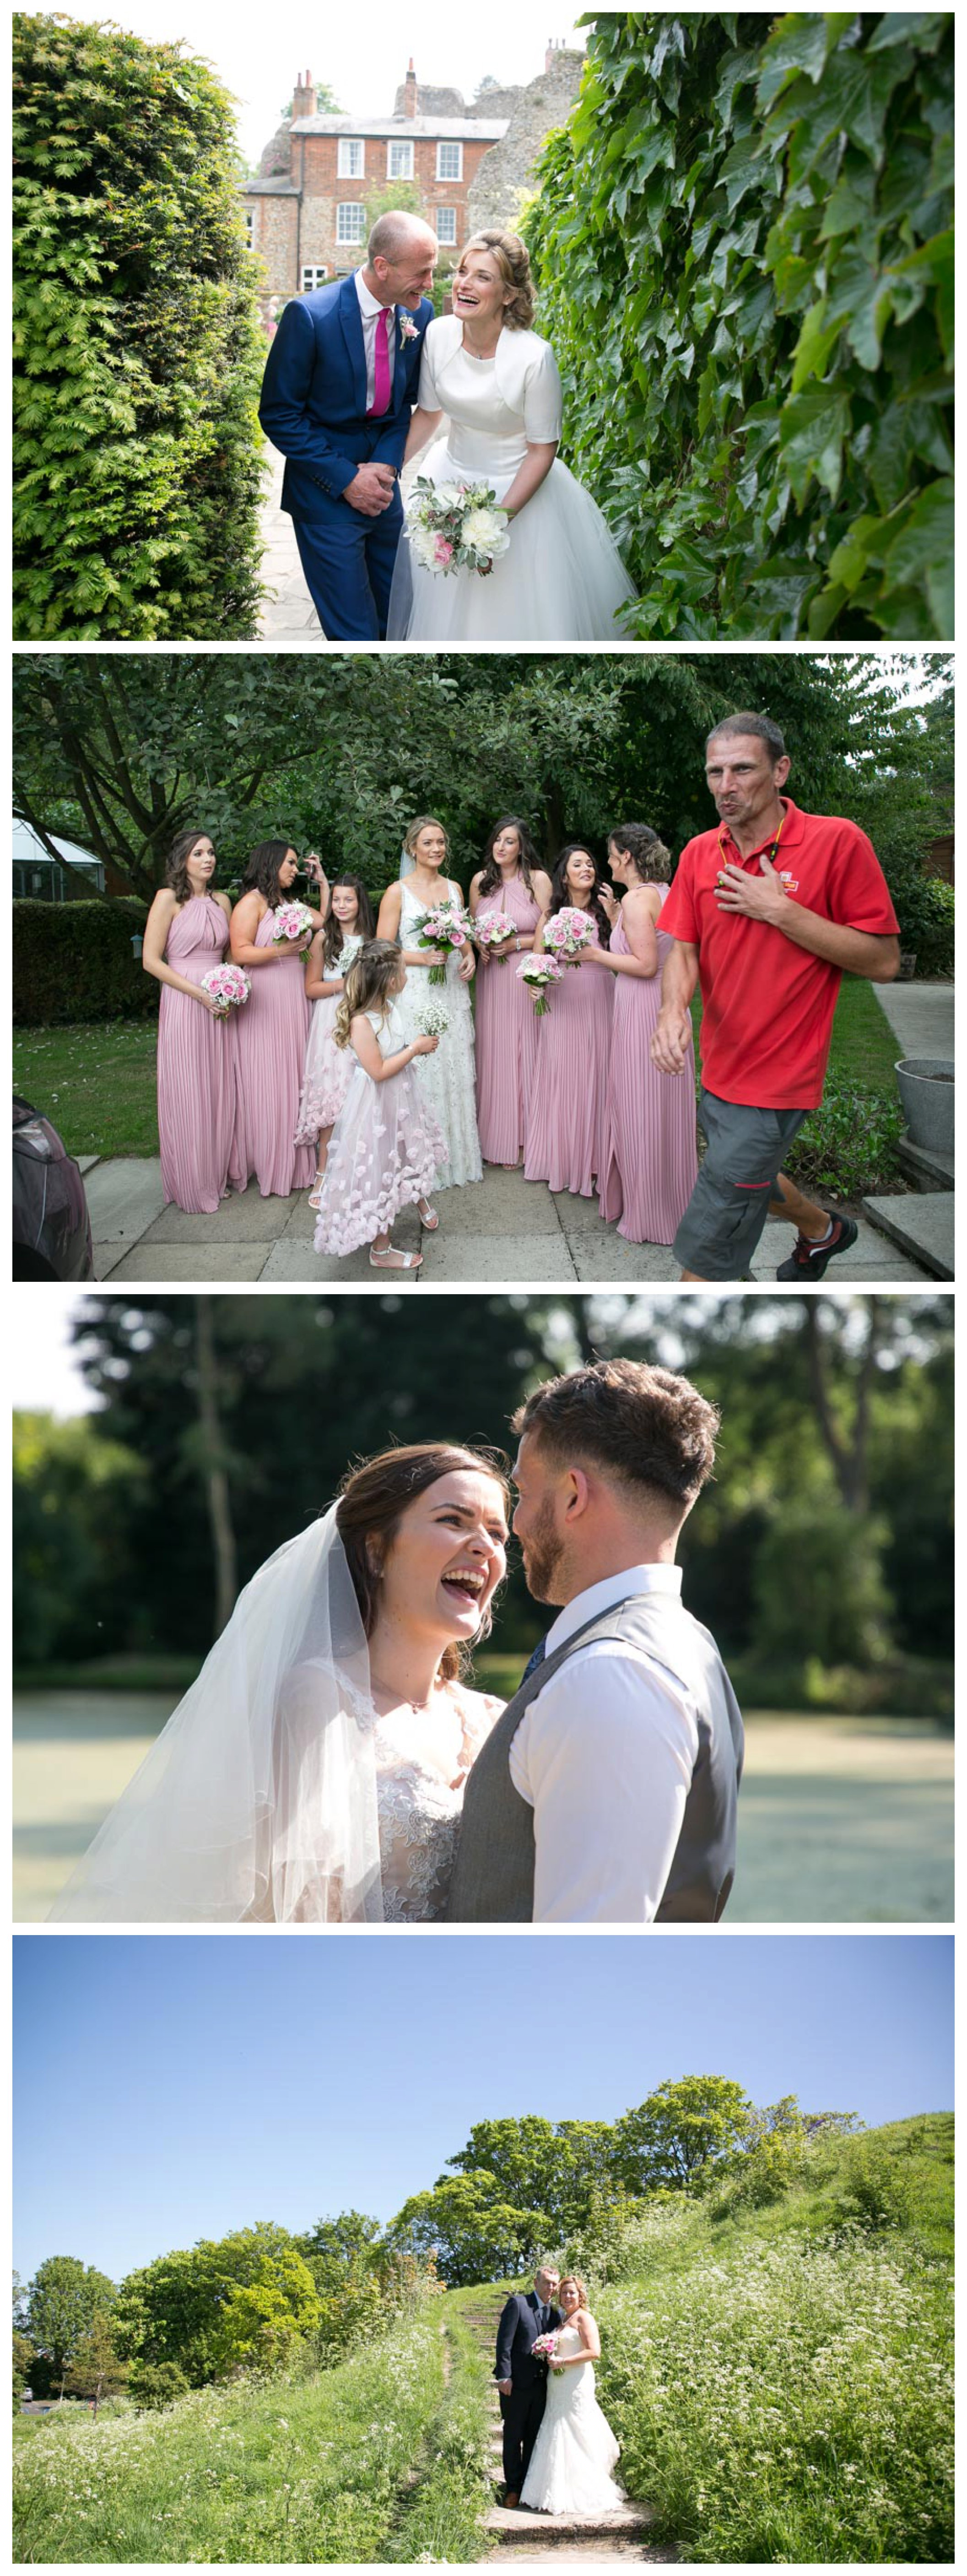 laughing wedding photography, couples smiling